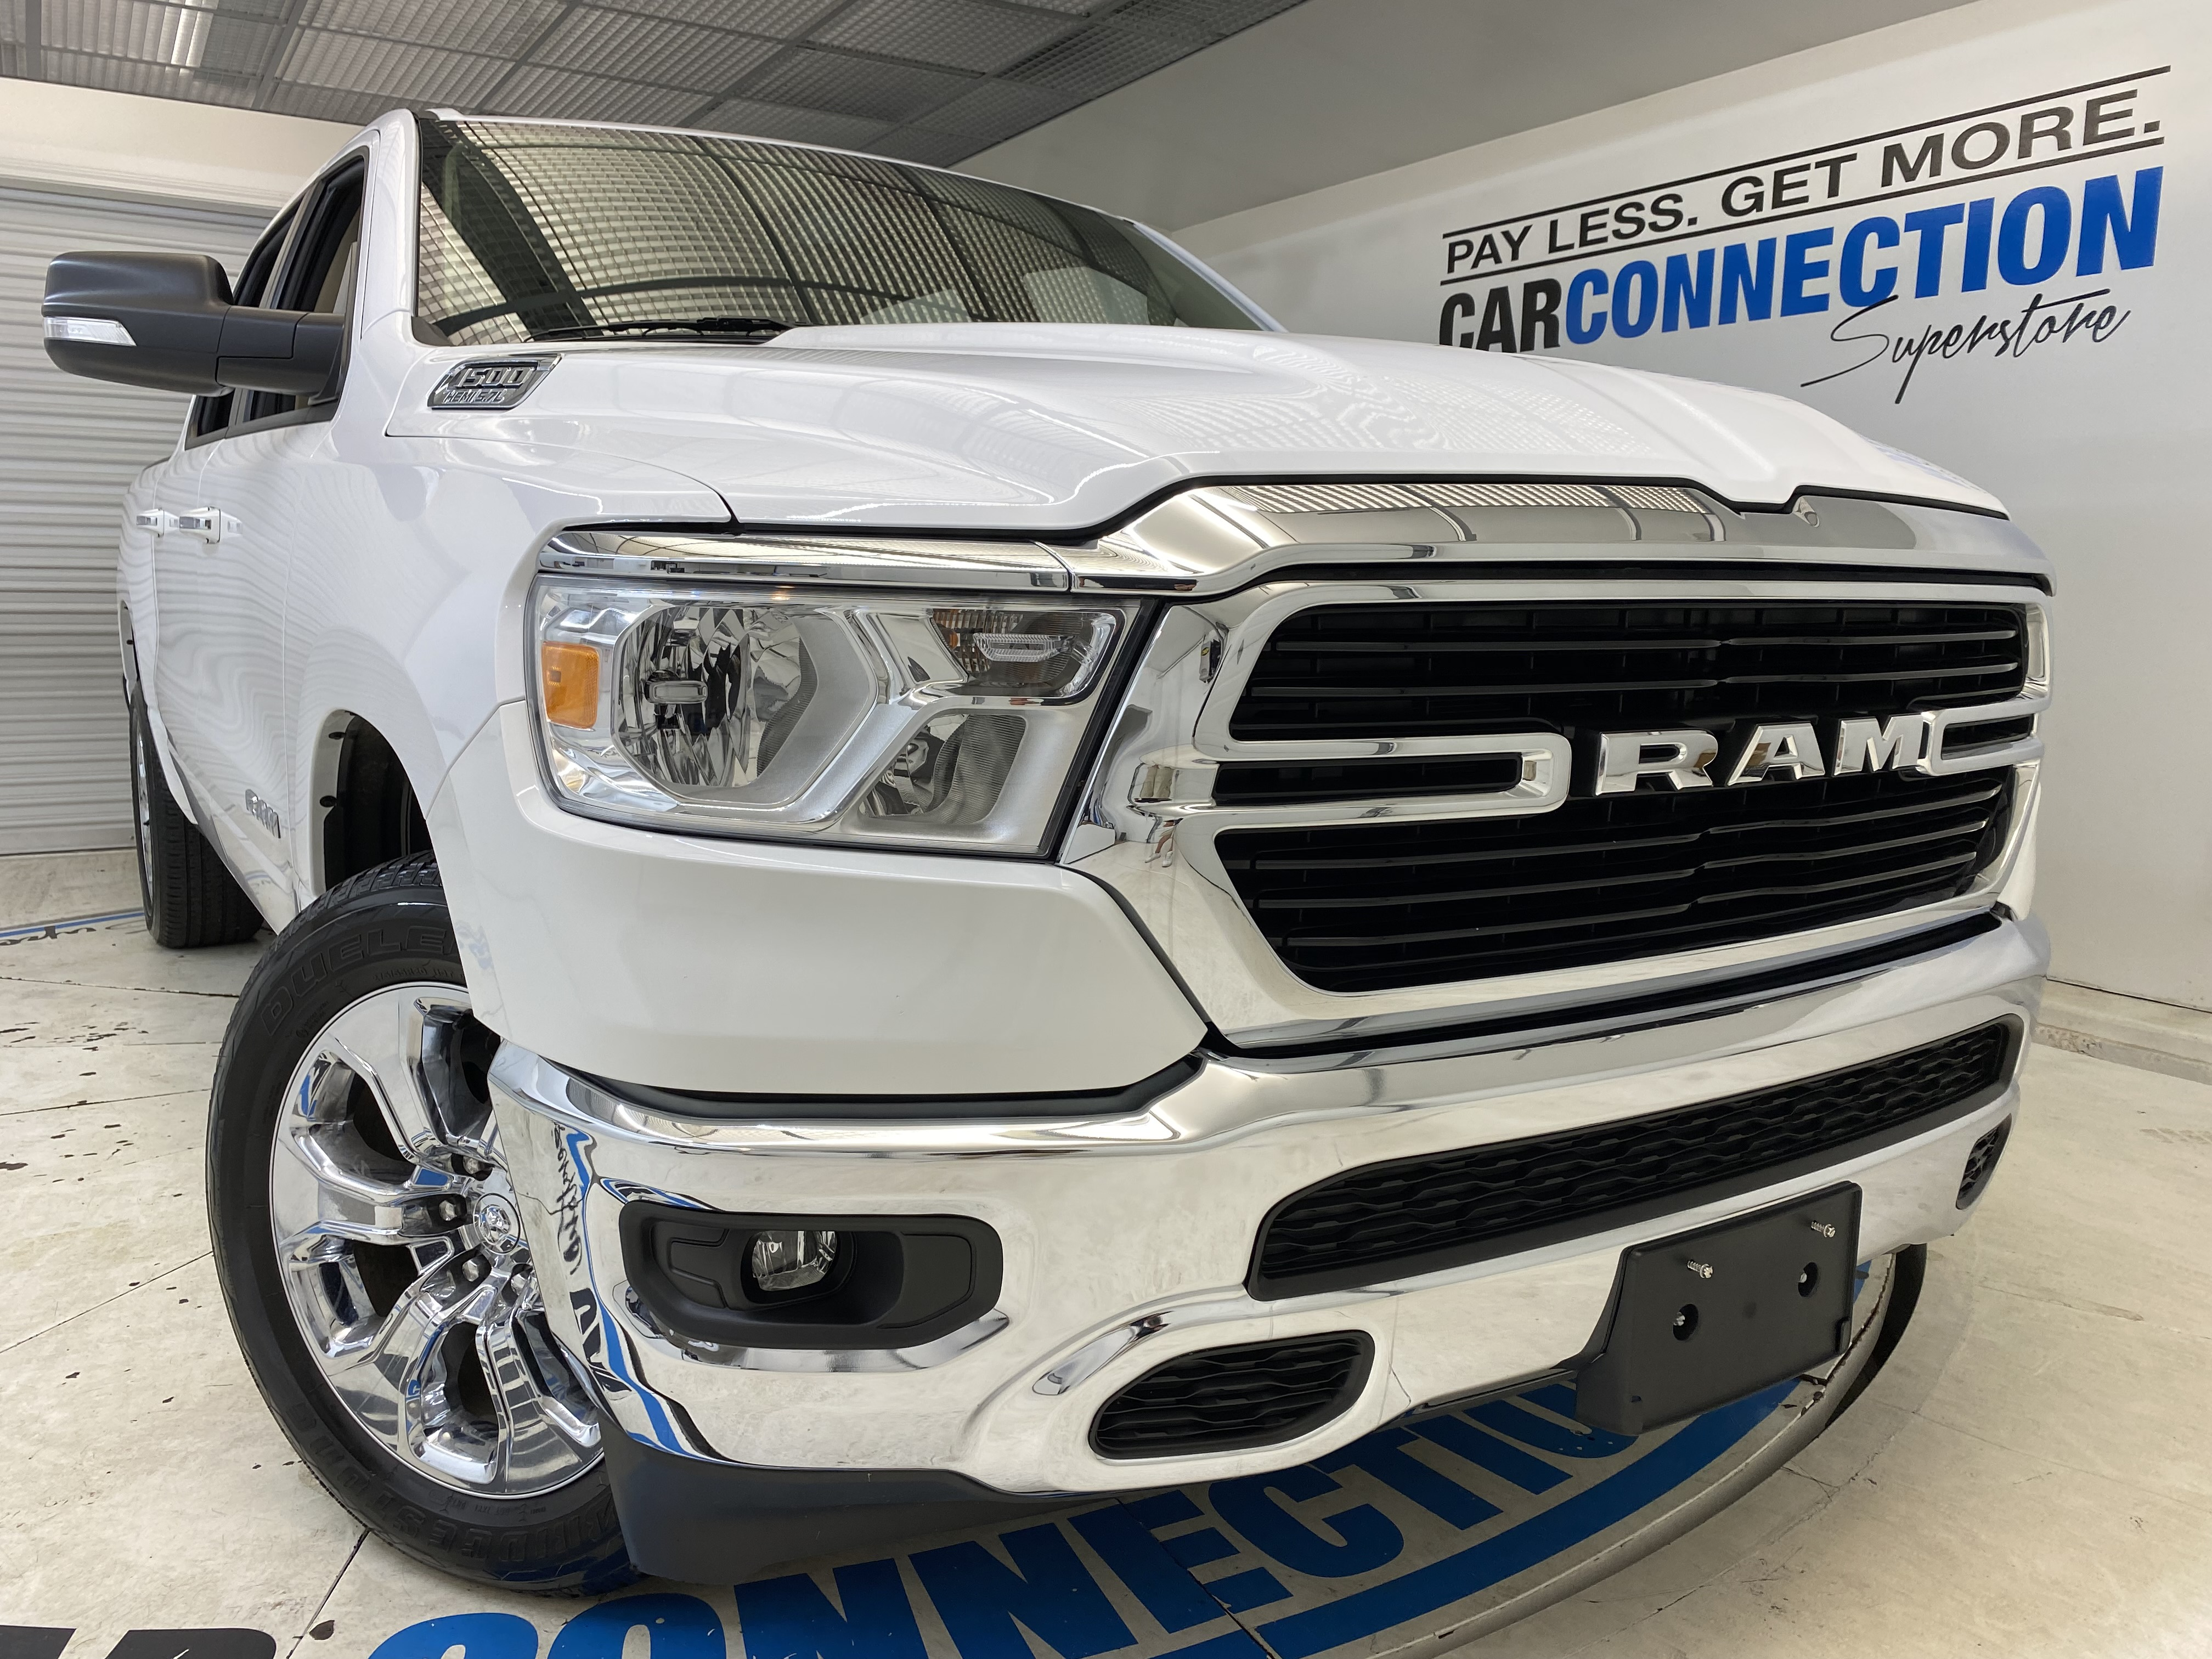 Car Connection Superstore - Used vehicle - Truck RAM 1500 CREW 2019